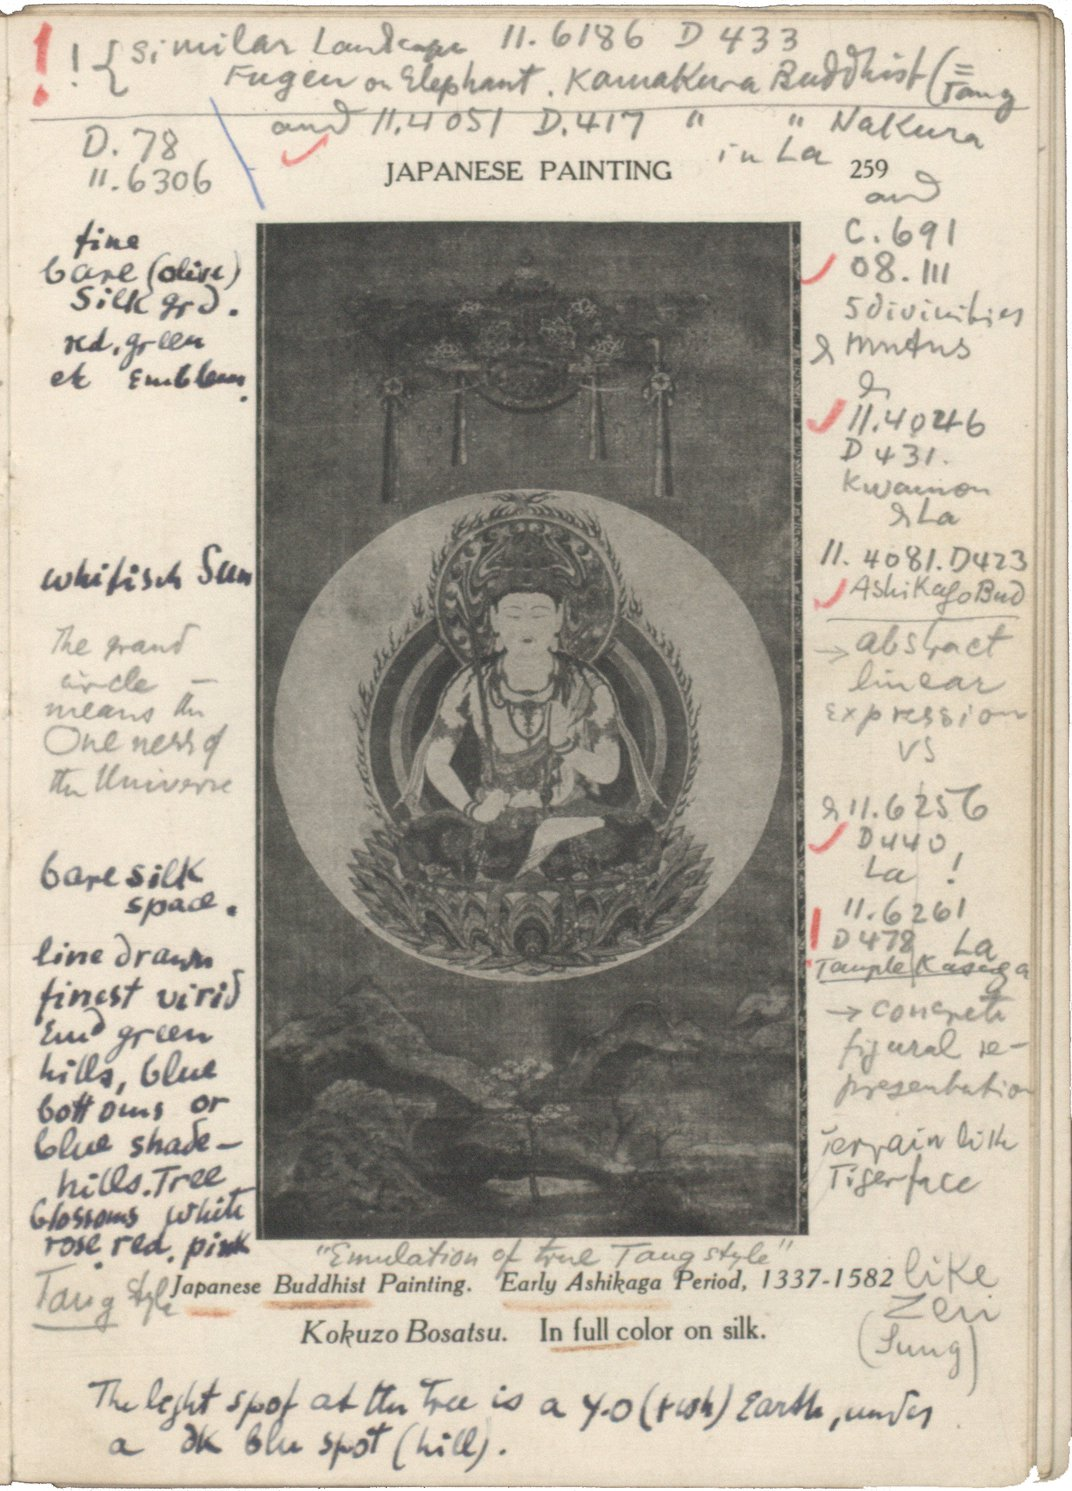 Printed book page with image of Kokuzo Bosatsua and extensive notes in pencil, ink, and red wax pencil.